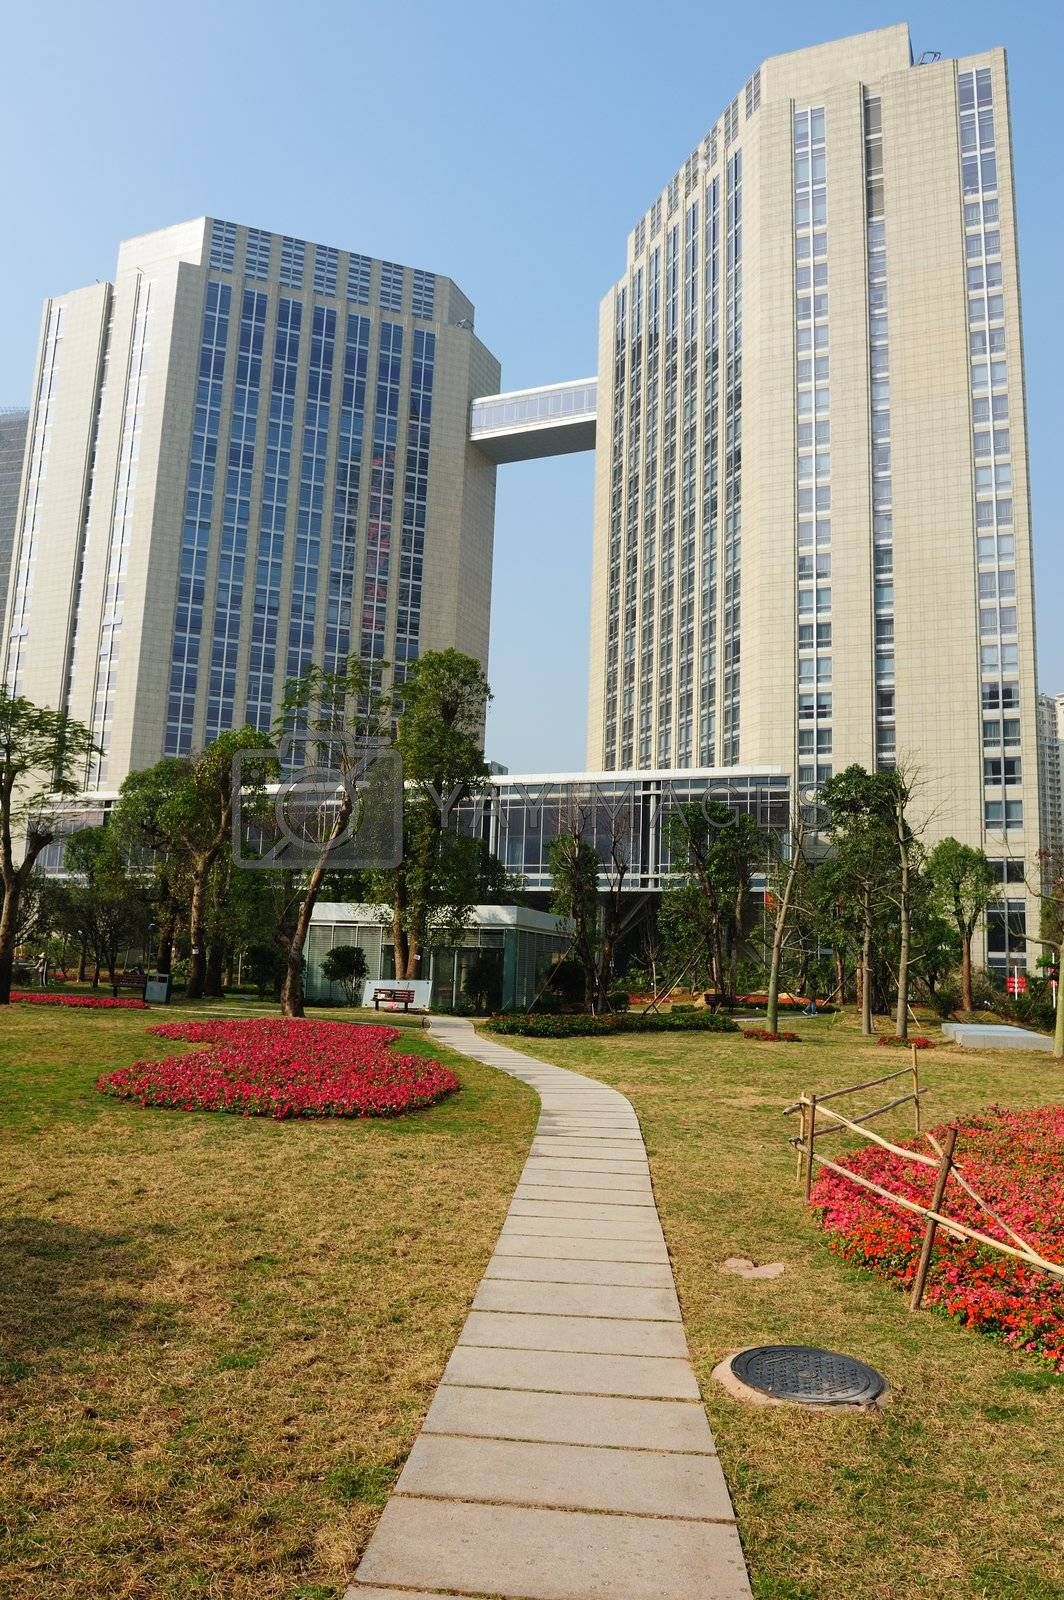 Path leading to buildings in Guangzhou Flower Citizen Plaza